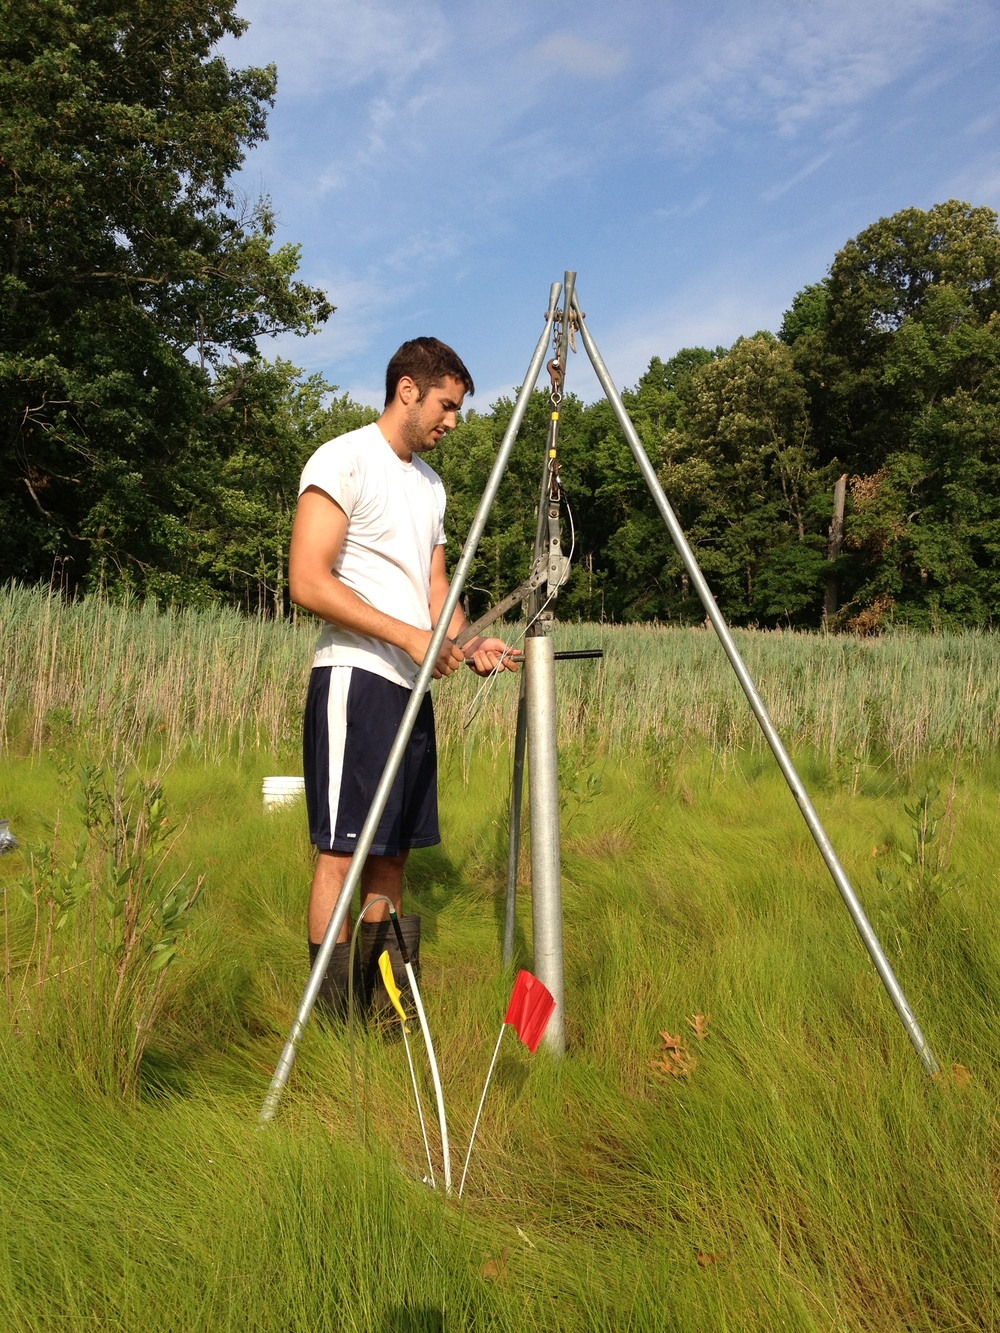 Justin Meschter, MEES M.S. student, taking sediment cores for research on below ground biogeochemistry.